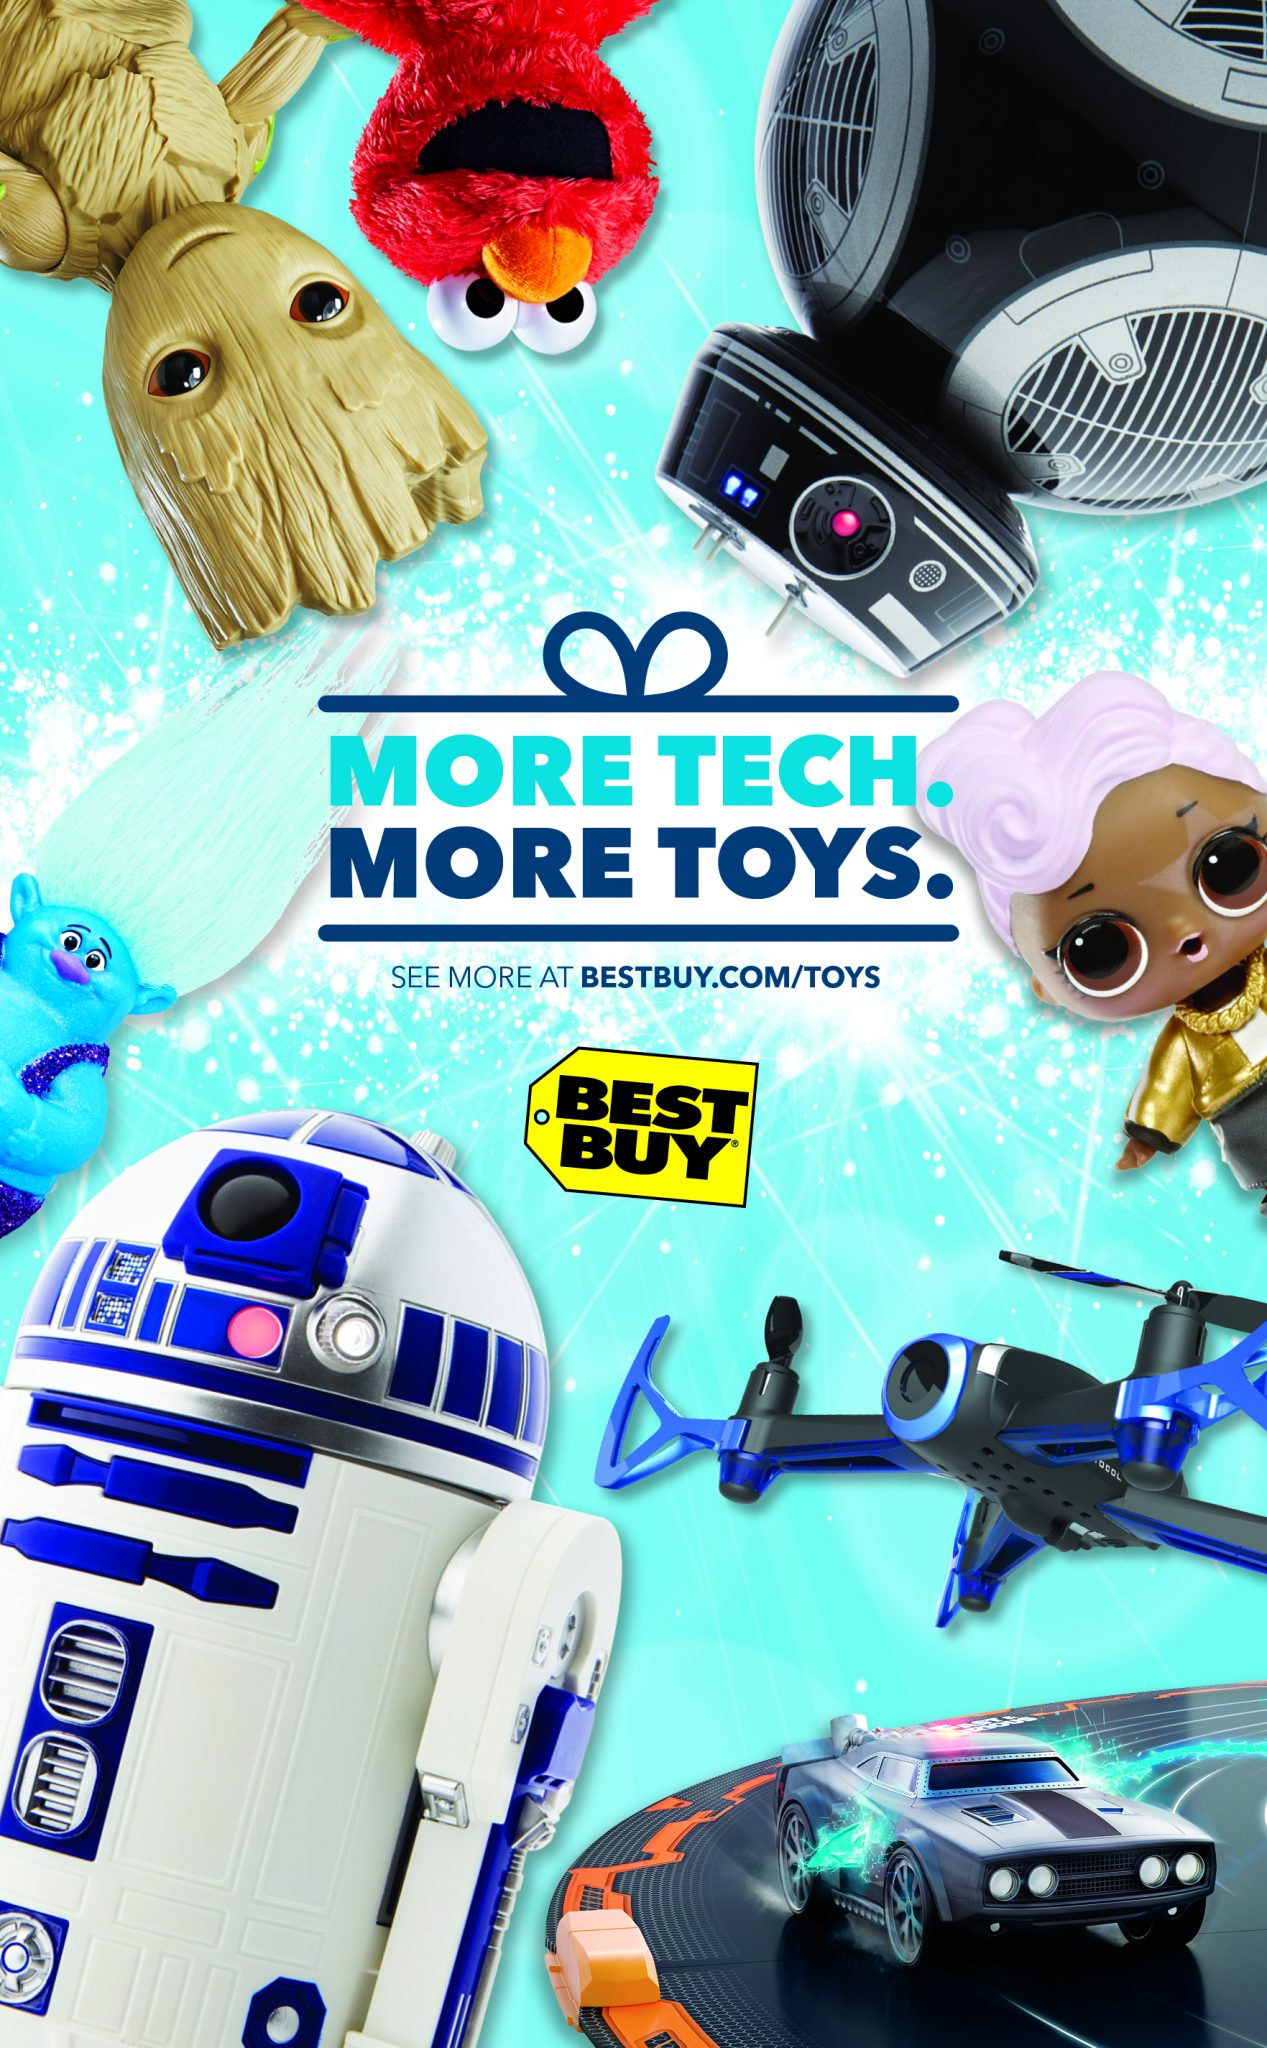 Holiday Toys image Best Buy